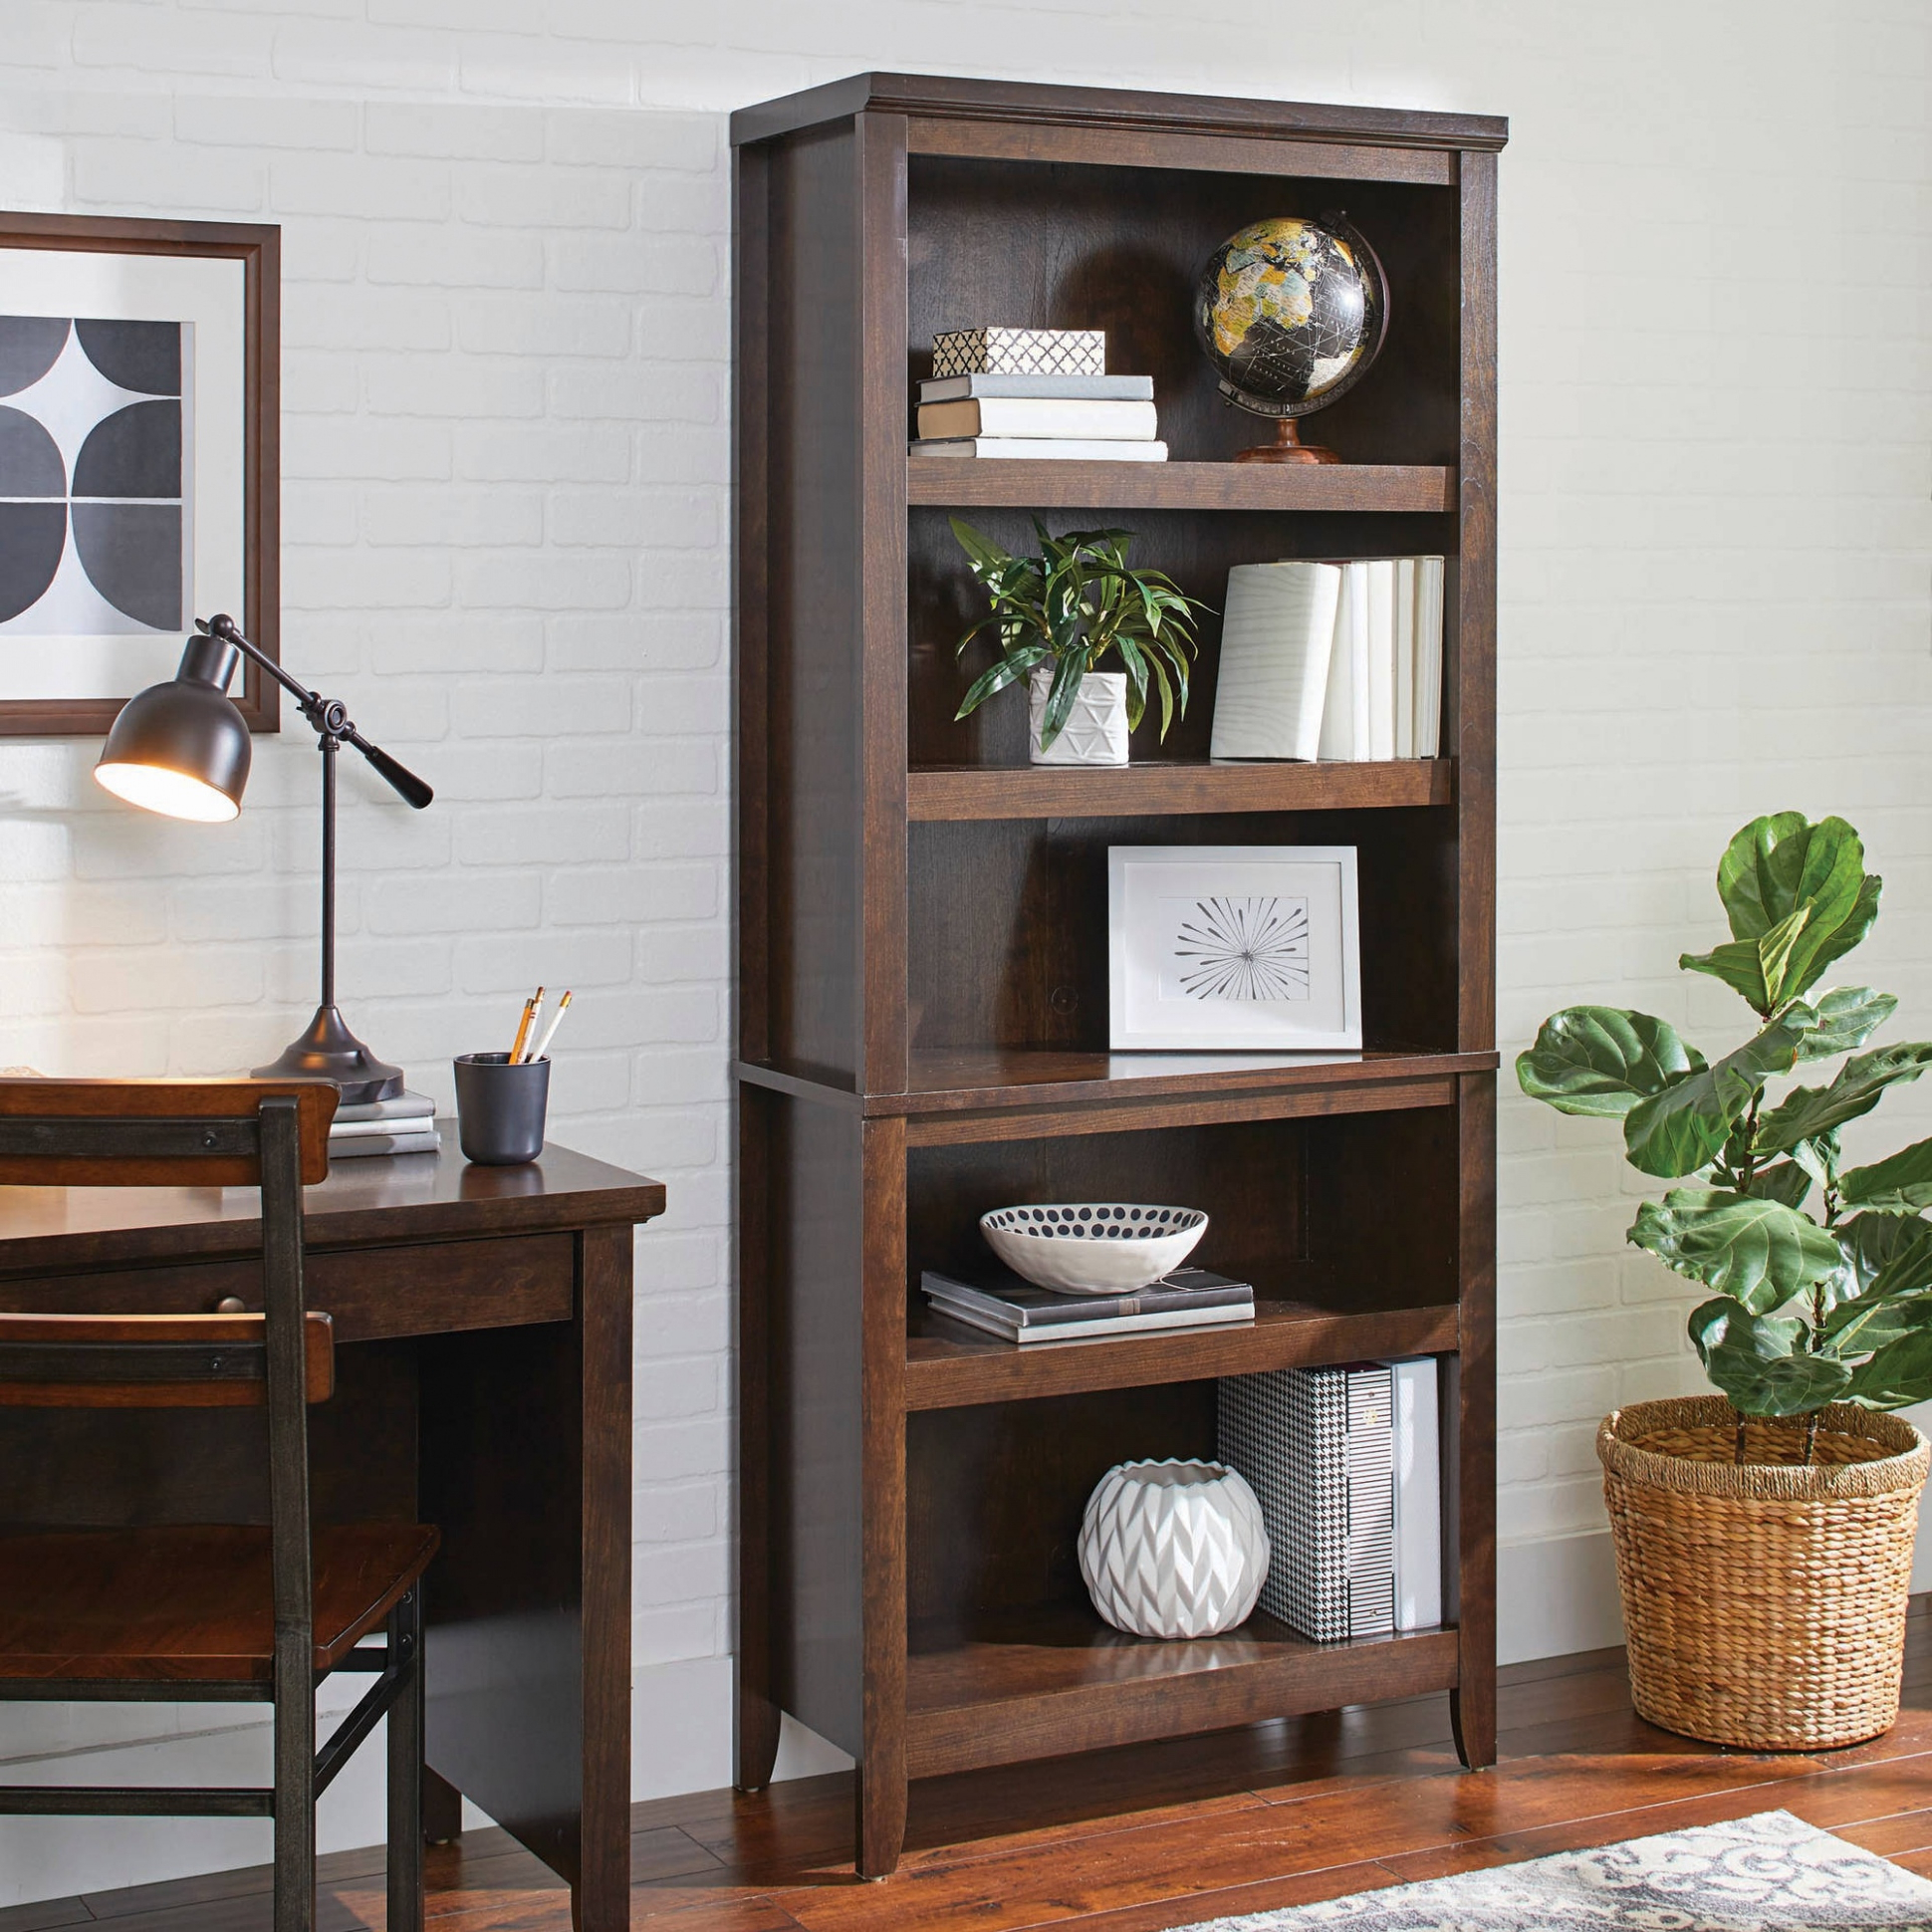 Most Popular Tv Stands And Bookshelf Pertaining To Best Of Bookshelf Tv Stand For Your Home Ideas 2018 — Rabbssteak (View 18 of 20)